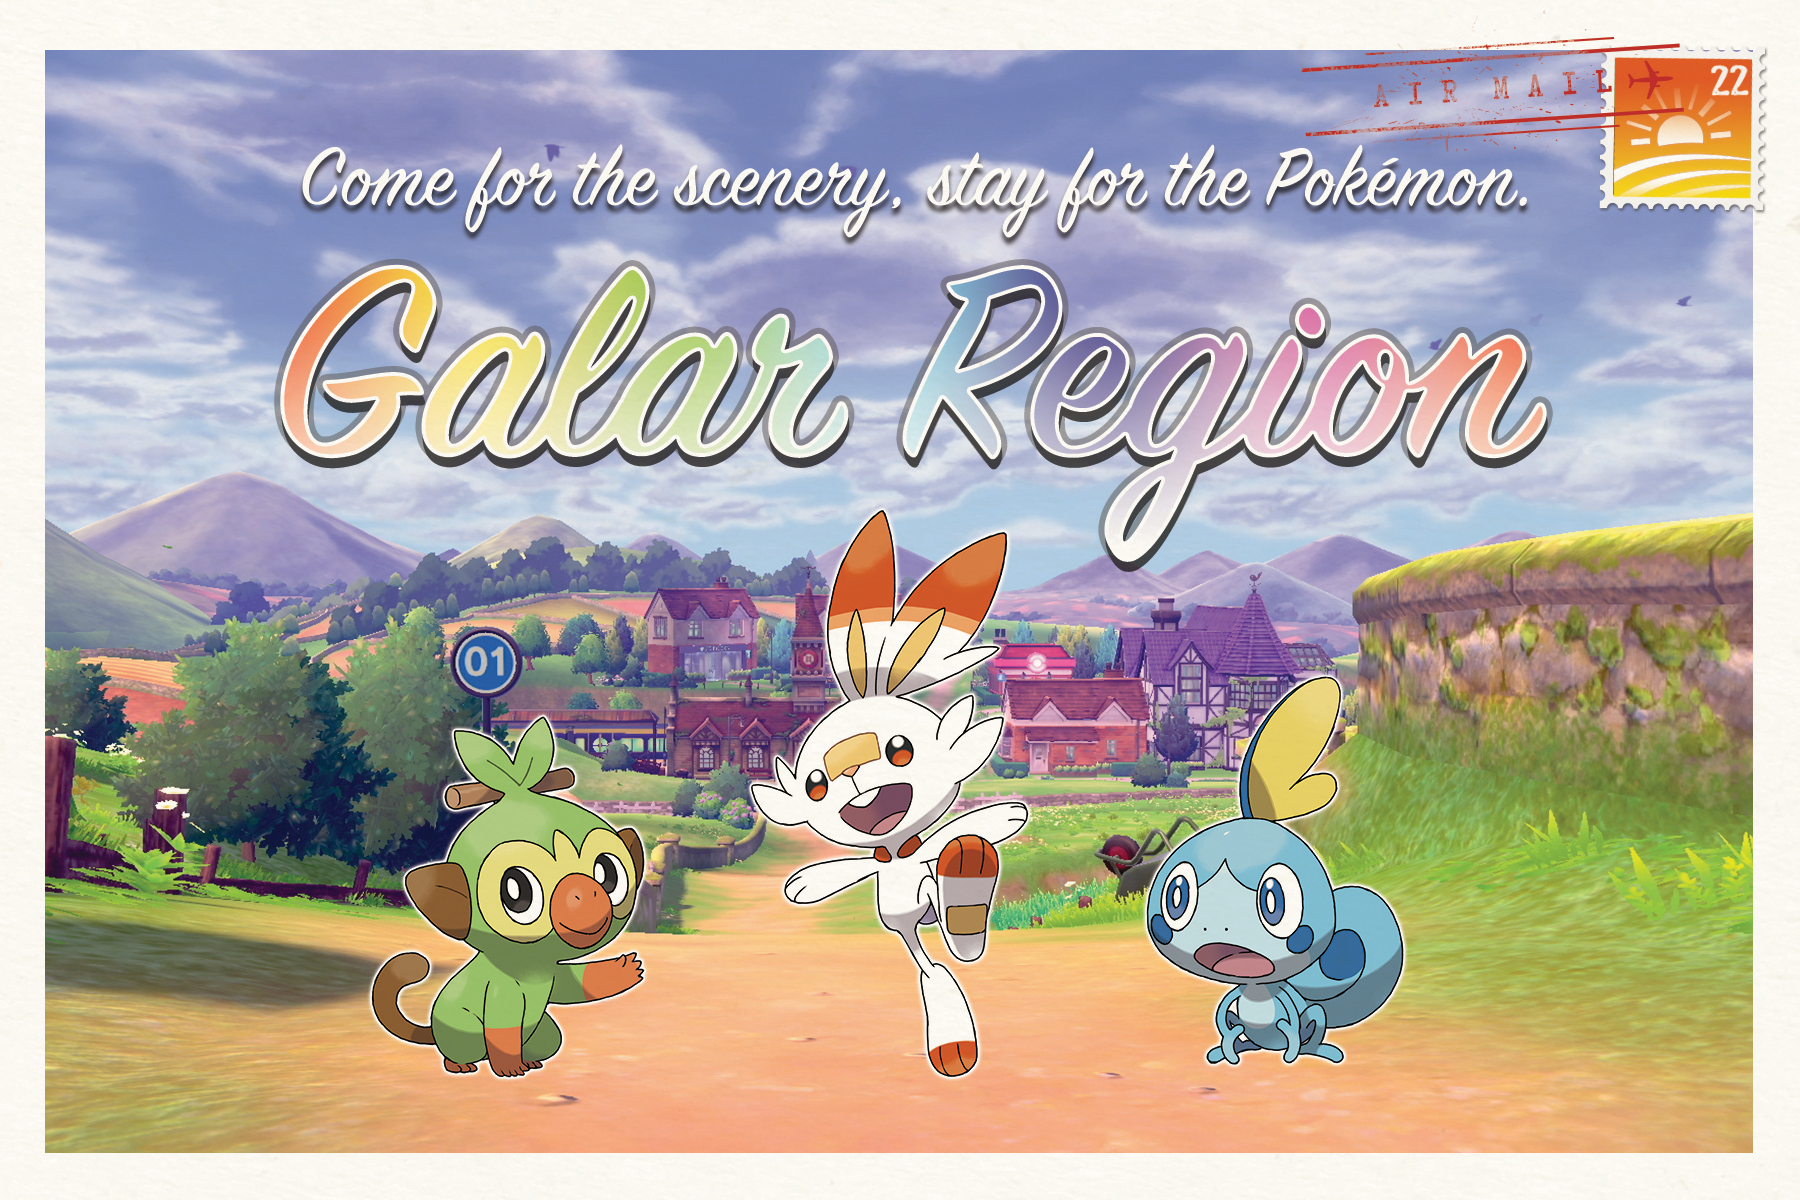 Illustration from Pokemon Sword and Shield. A postcard reading